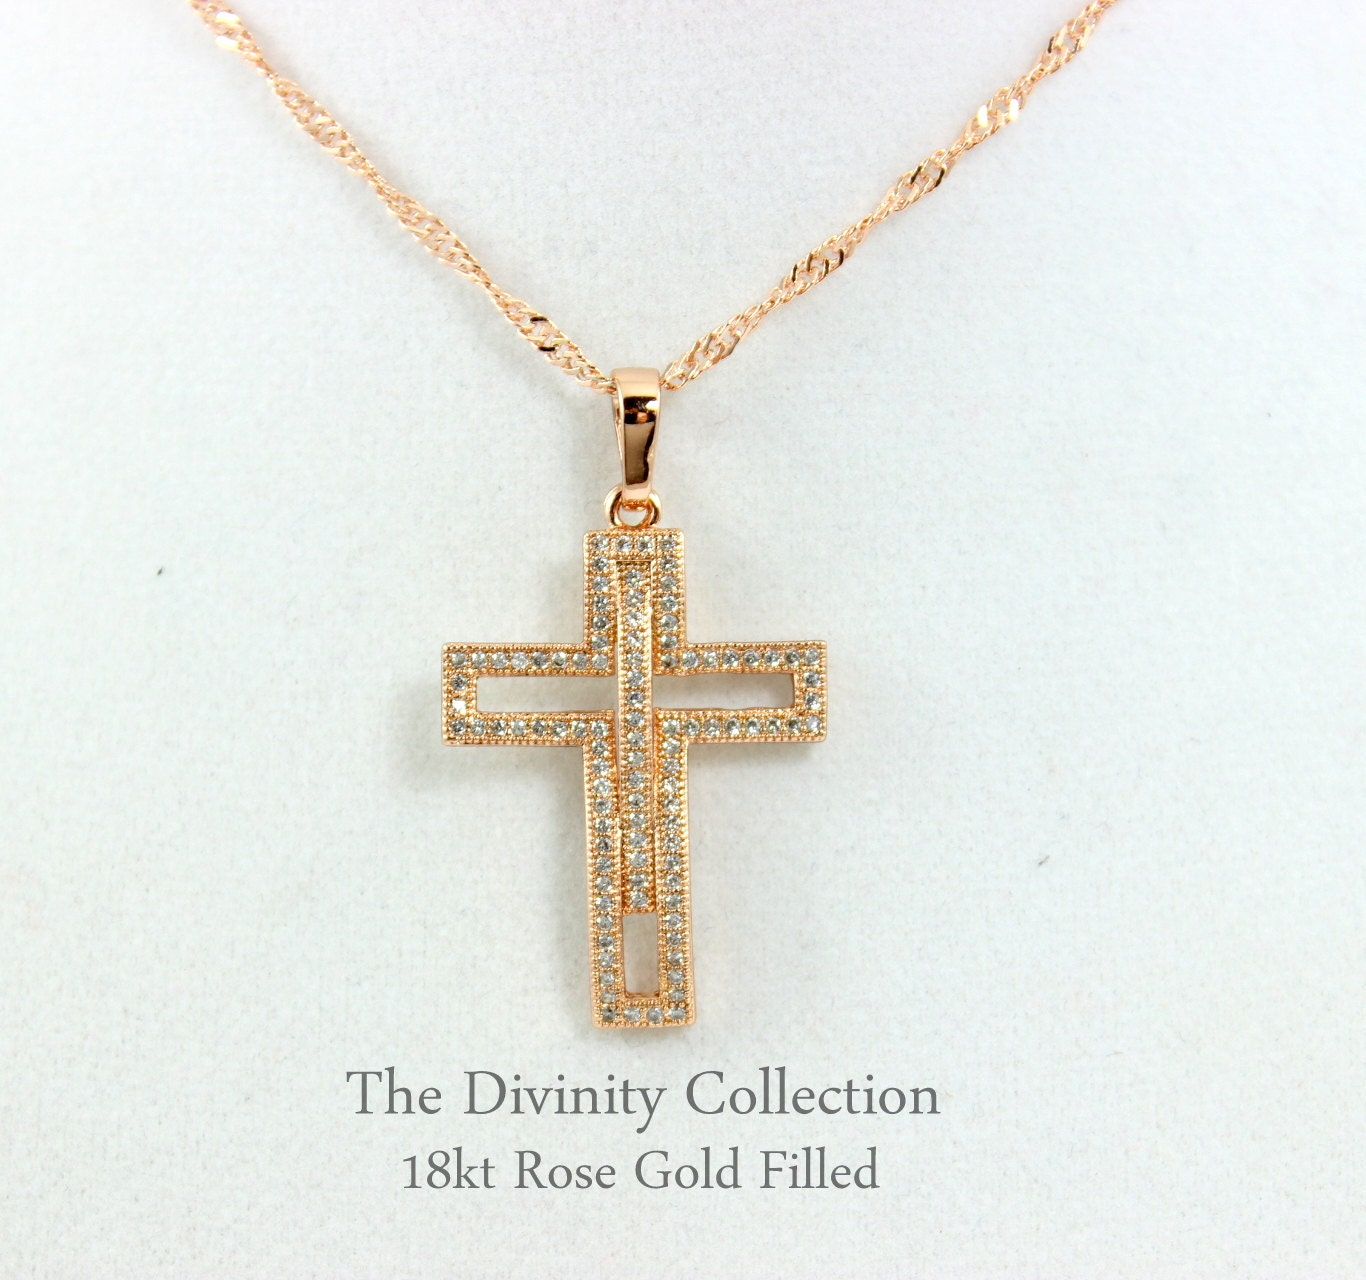 cross necklace women rose gold filled pave crystal large. Black Bedroom Furniture Sets. Home Design Ideas